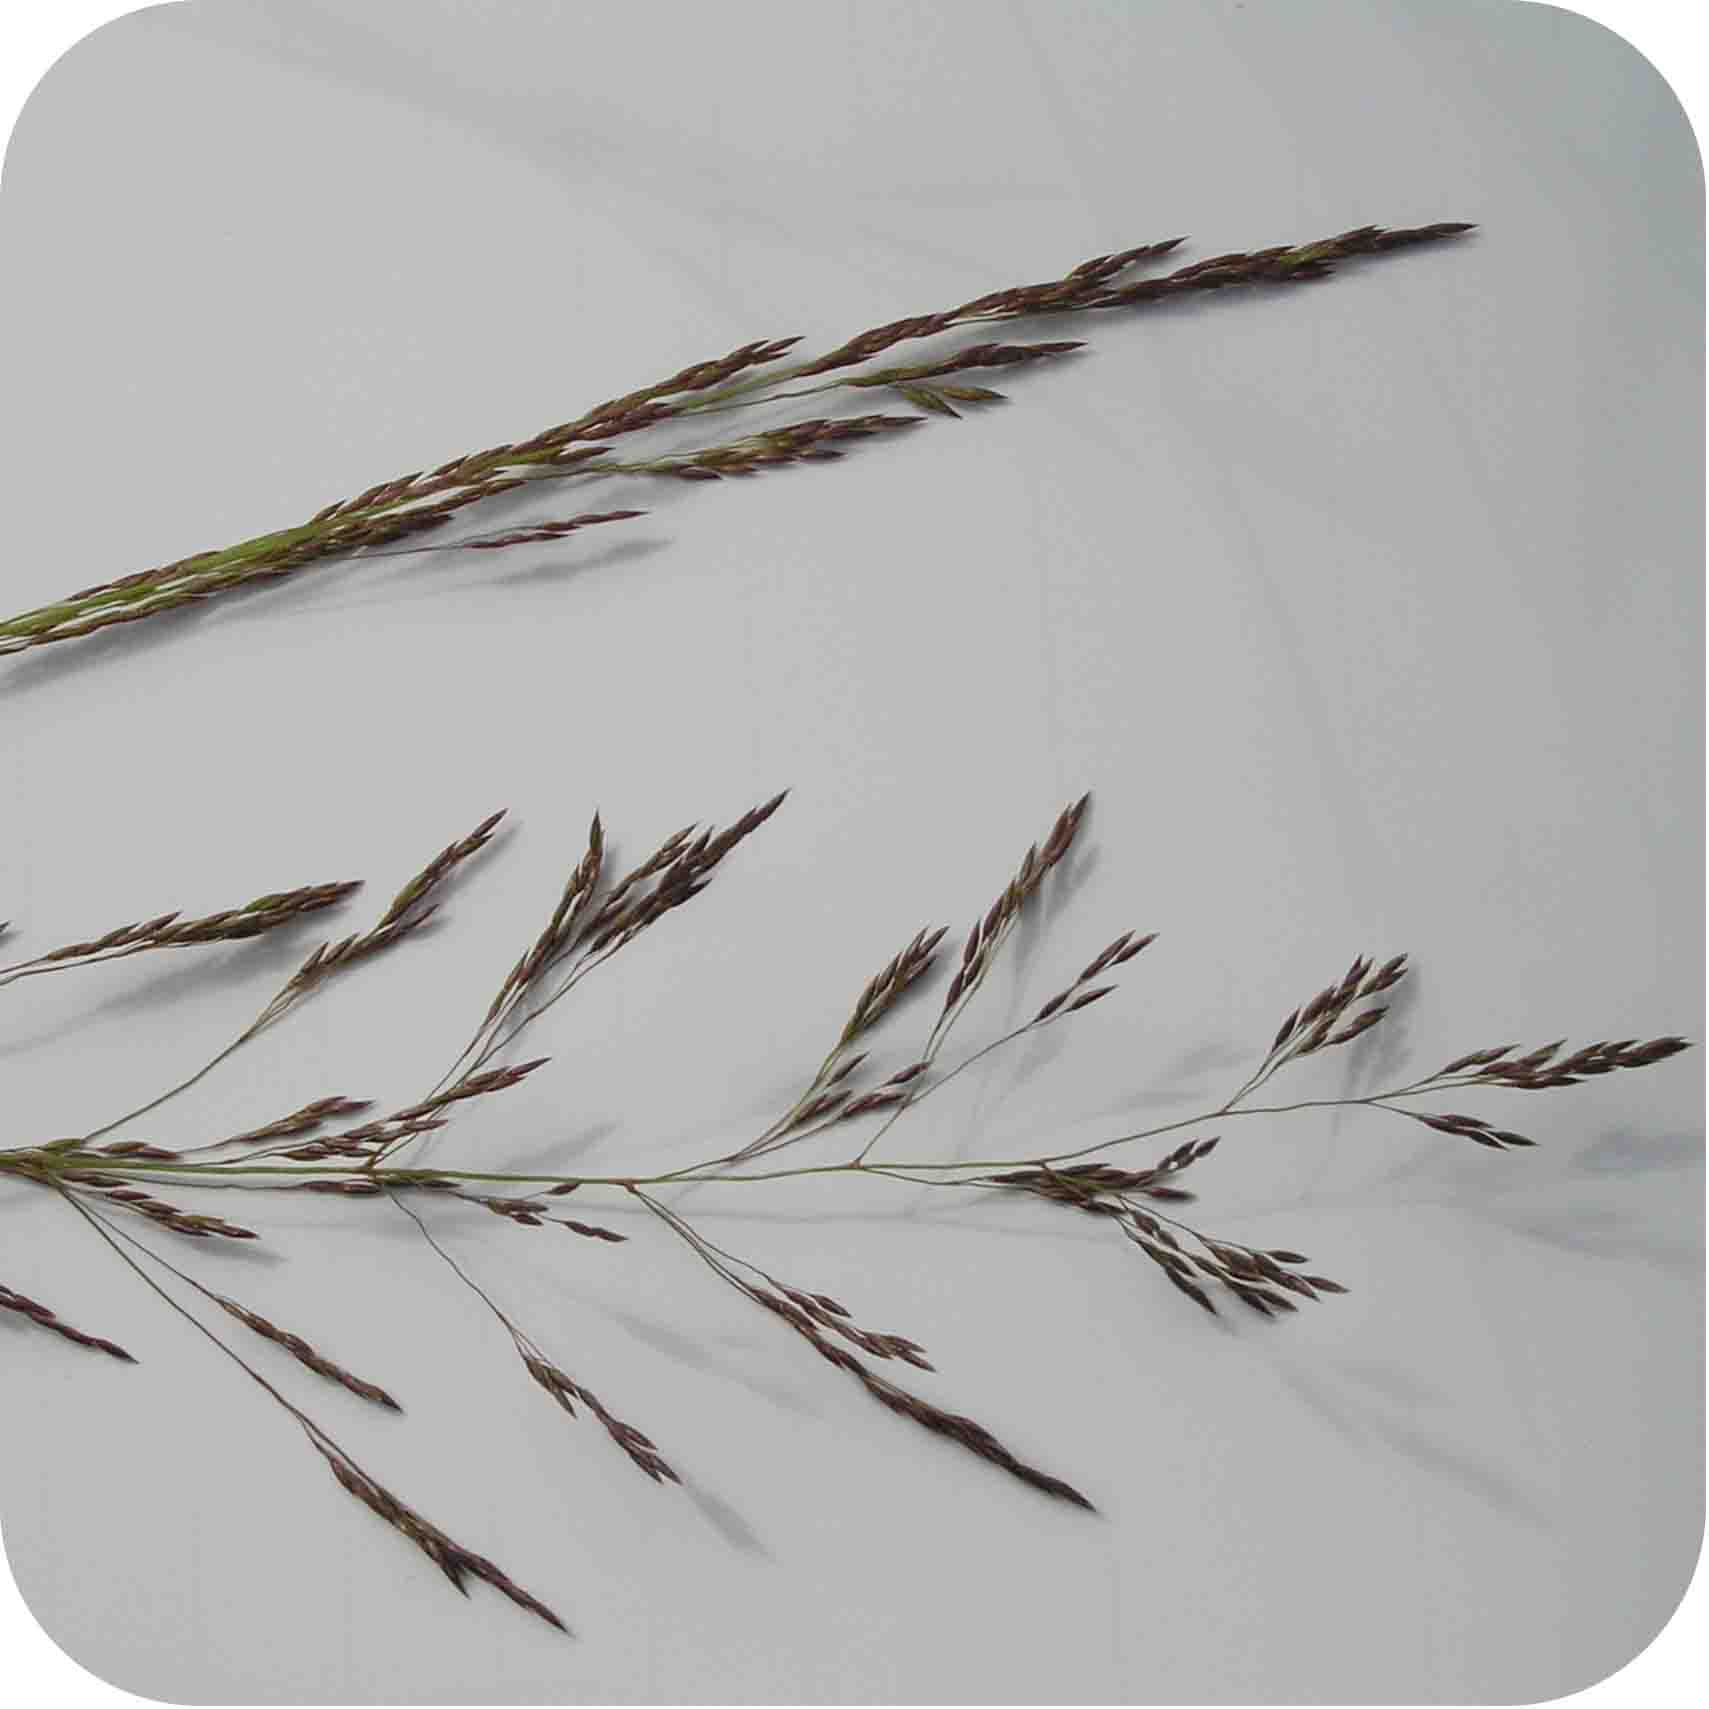 Common Bent (Agrostis capillaris)